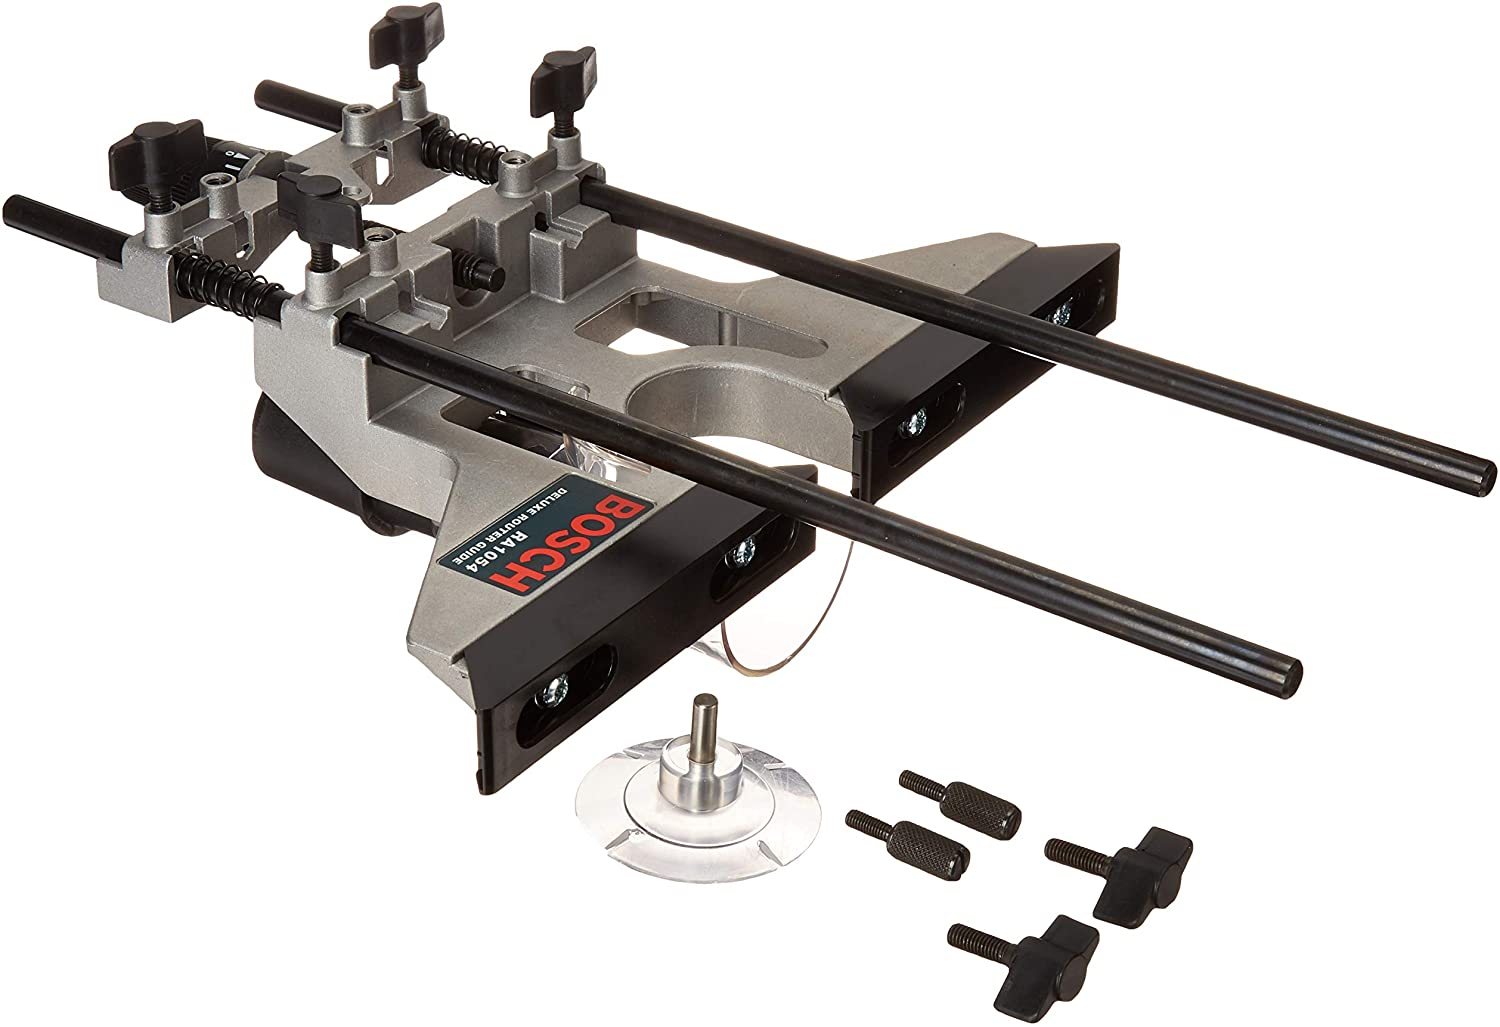 7 Best Router Edge Guide Reviews in 2021   The Edge Cutter